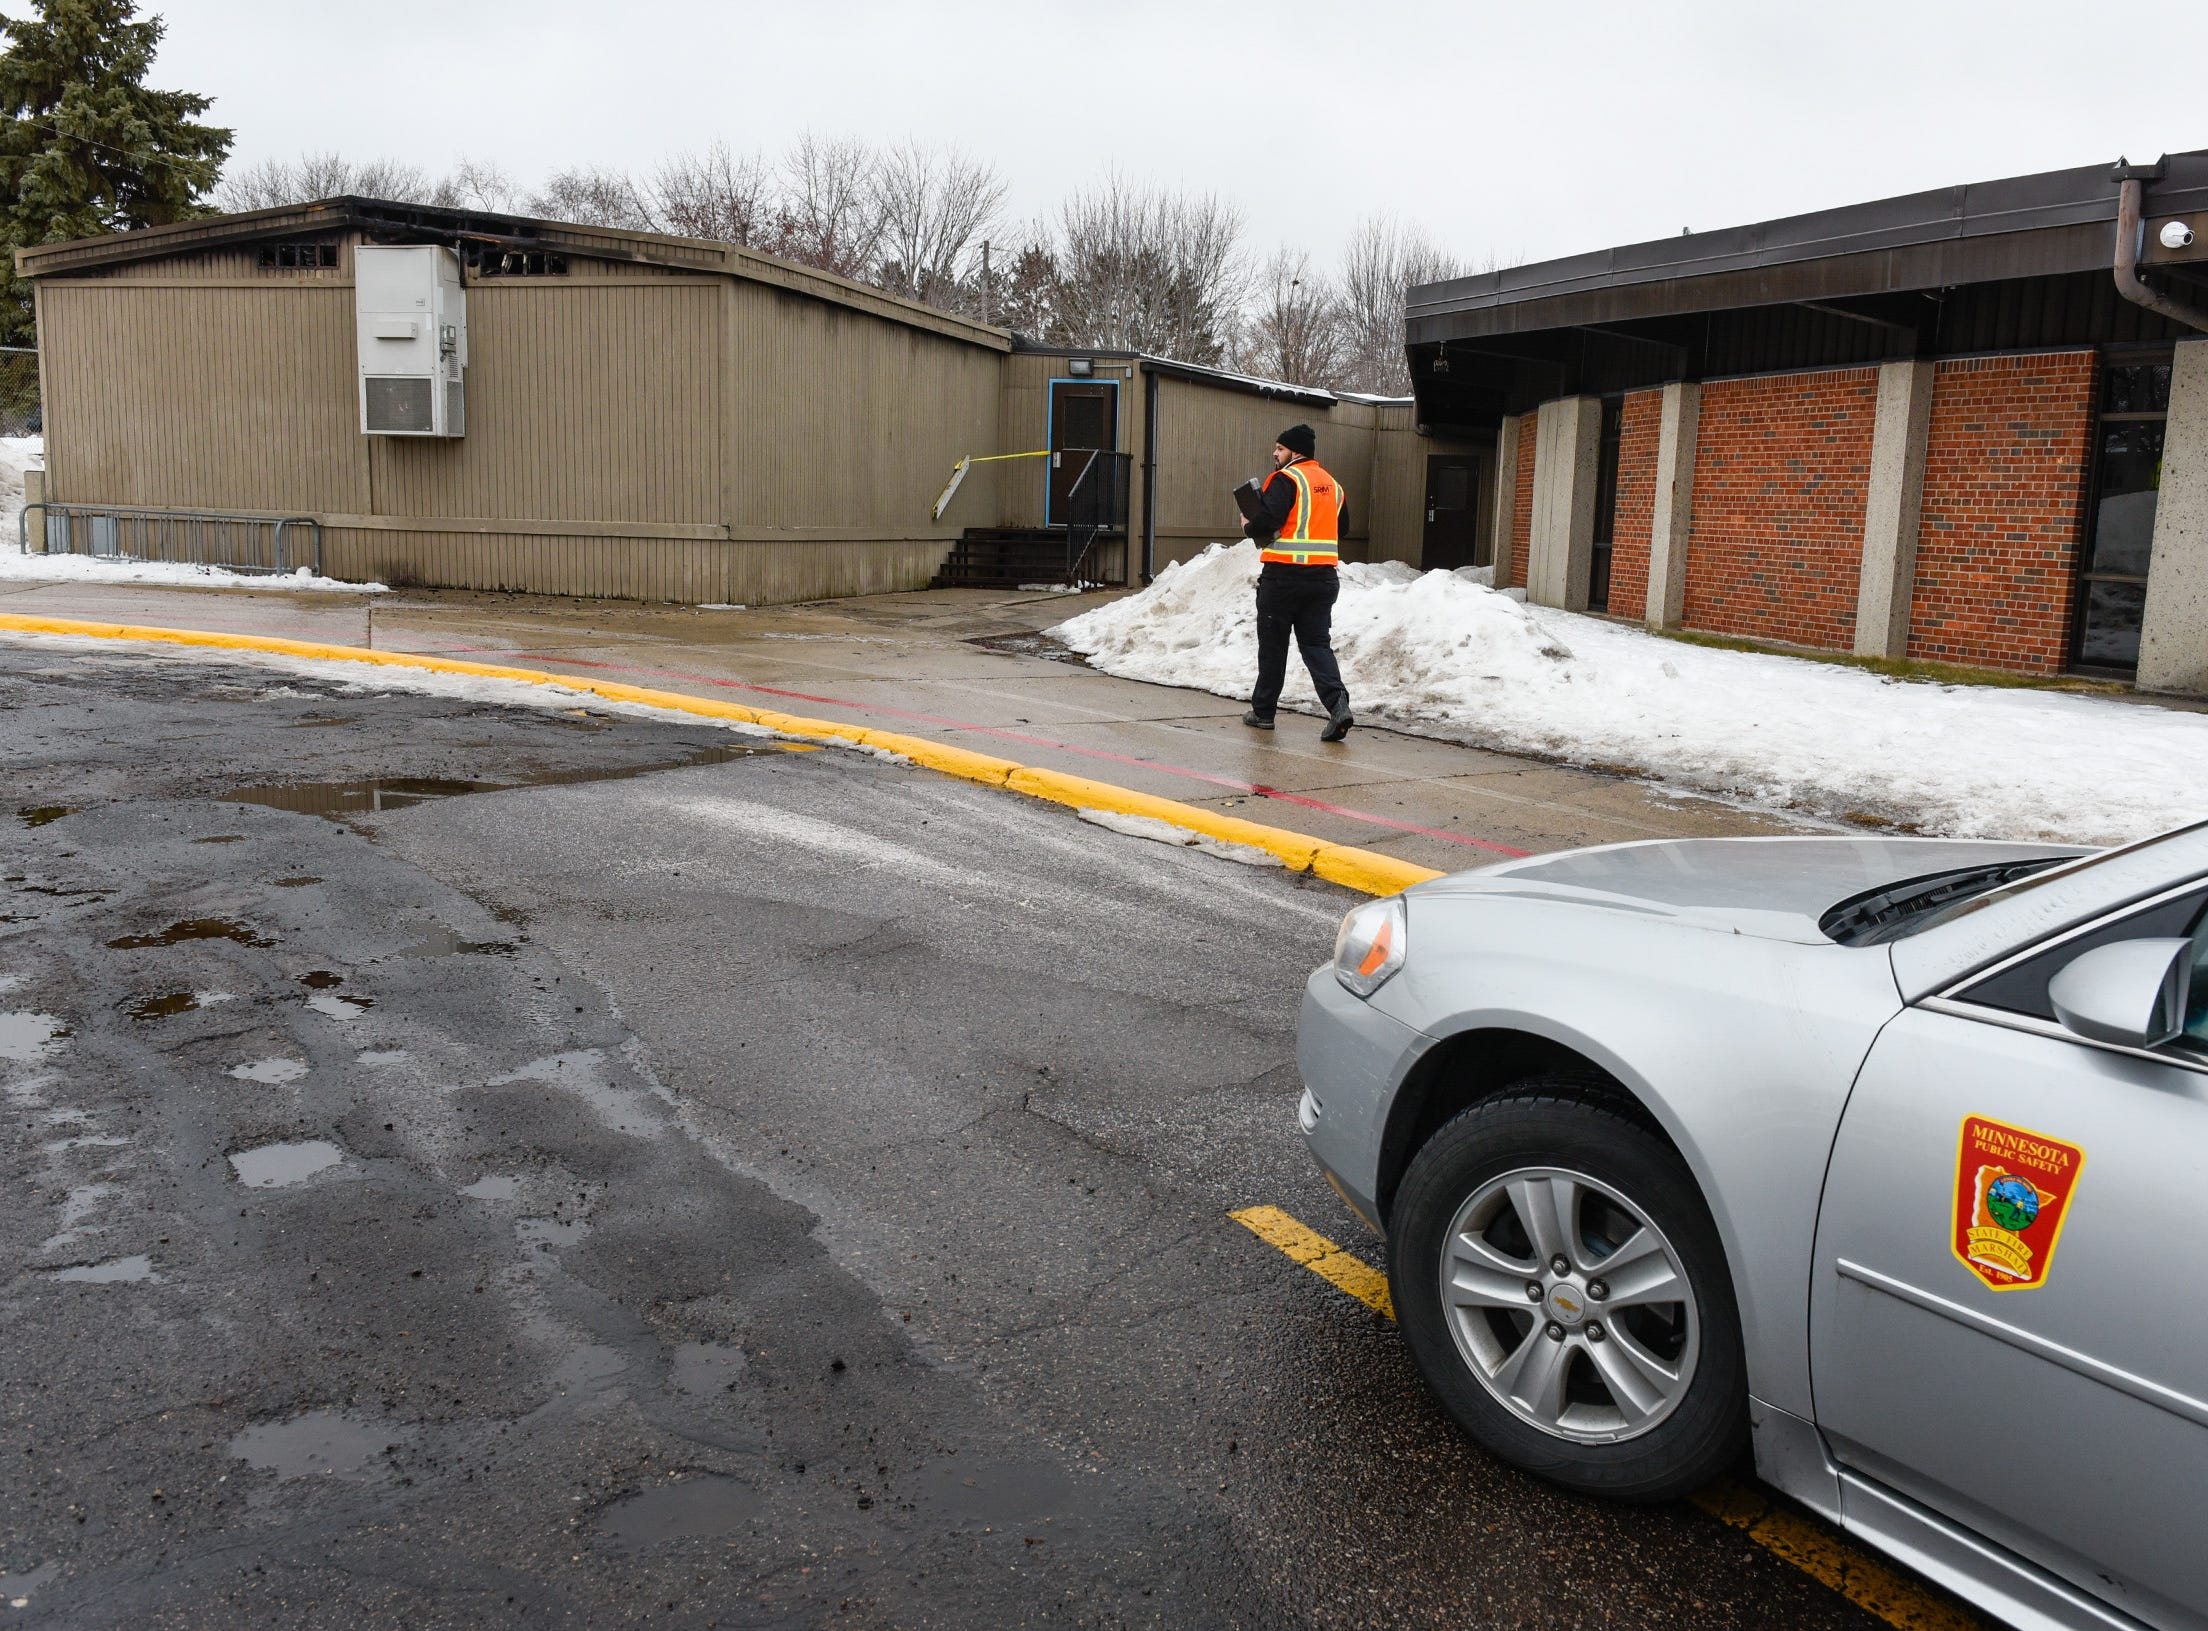 The State Fire Marshal and other officials at Pleasantview Elementary School in Sauk Rapids assessing damage Monday, Jan. 14, after a fire Sunday night.